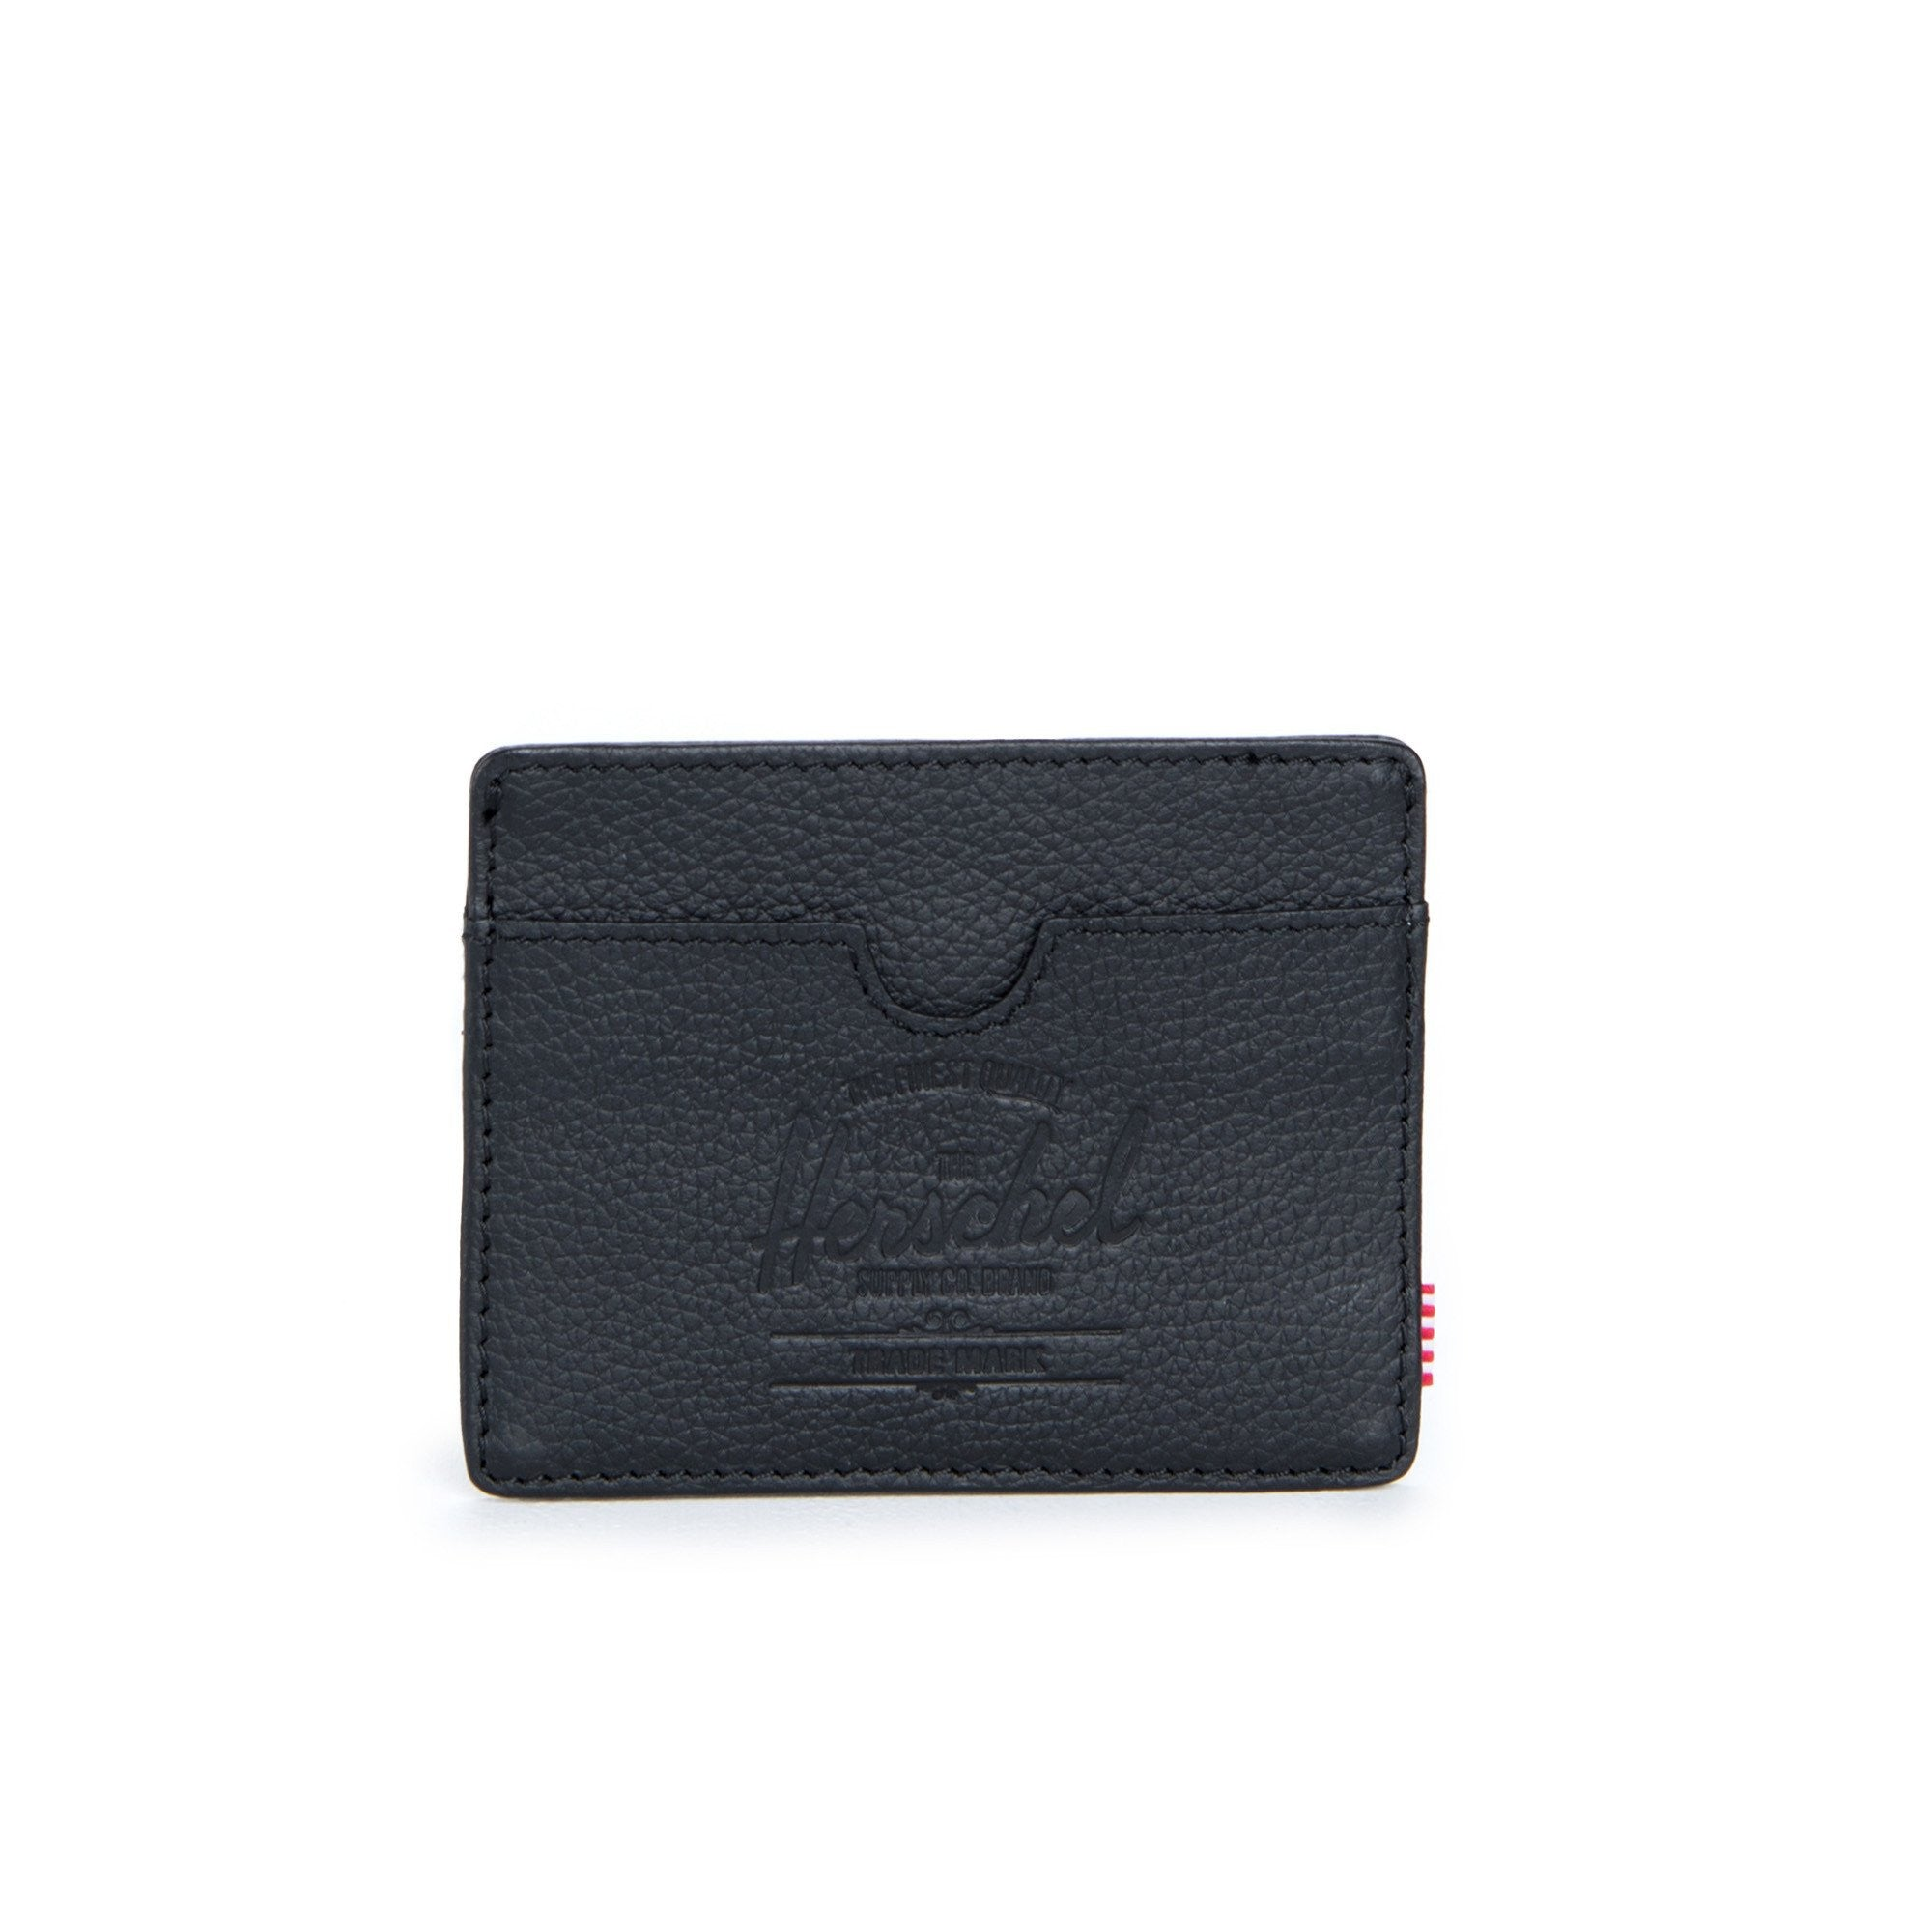 Herschel Charlie Leather Wallet Black